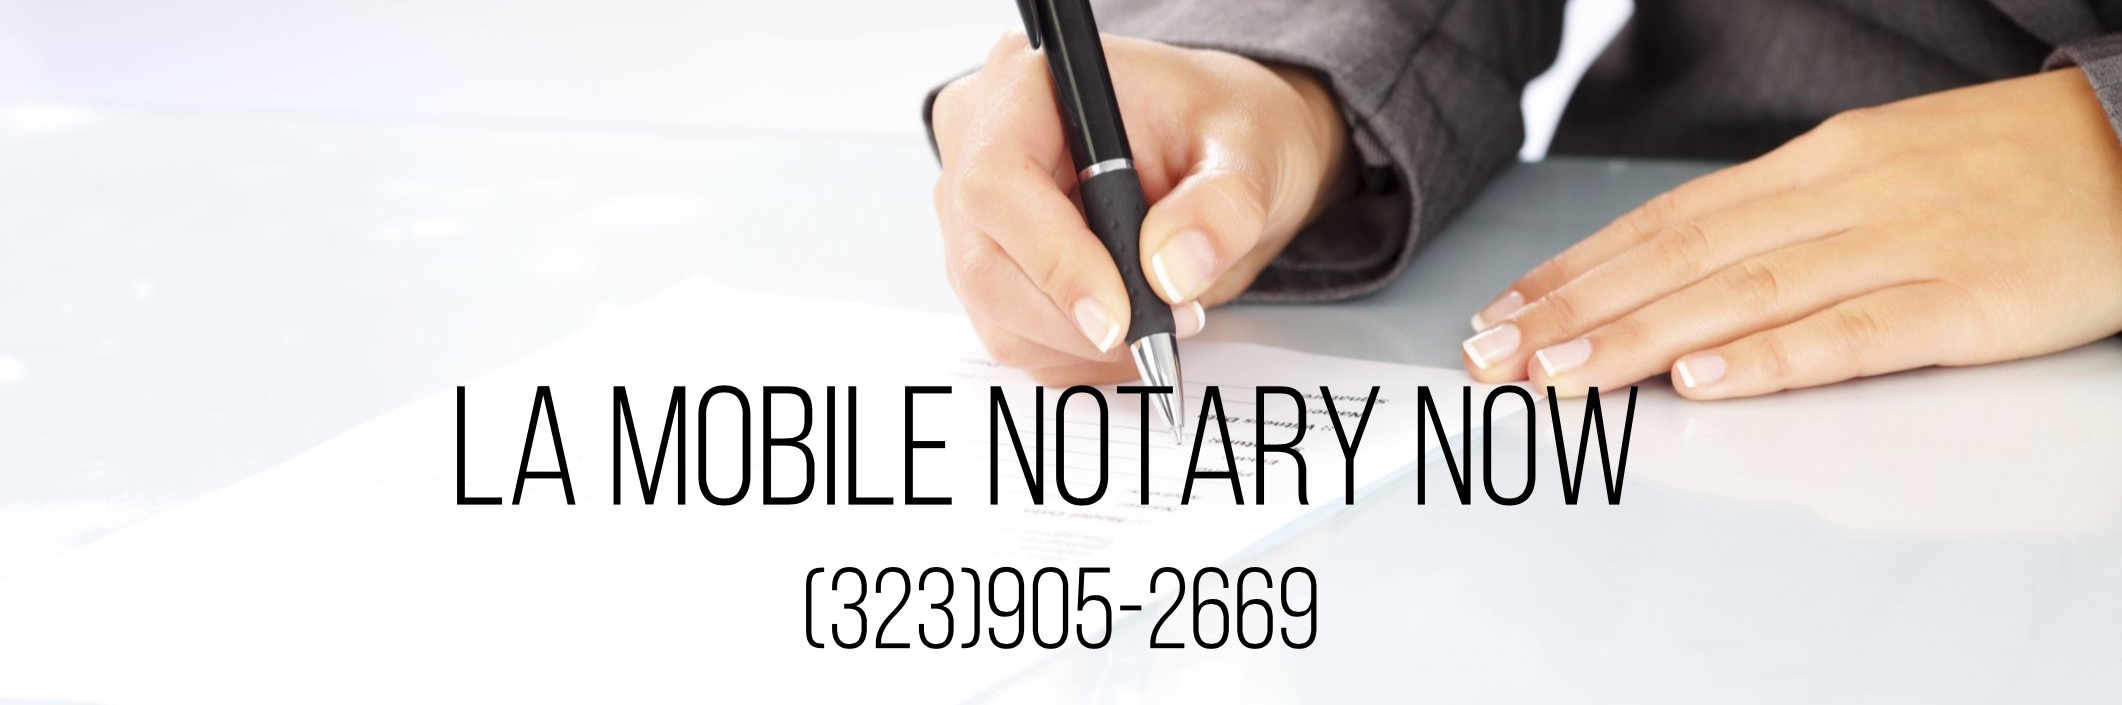 Mobile Notary Los Angeles Image